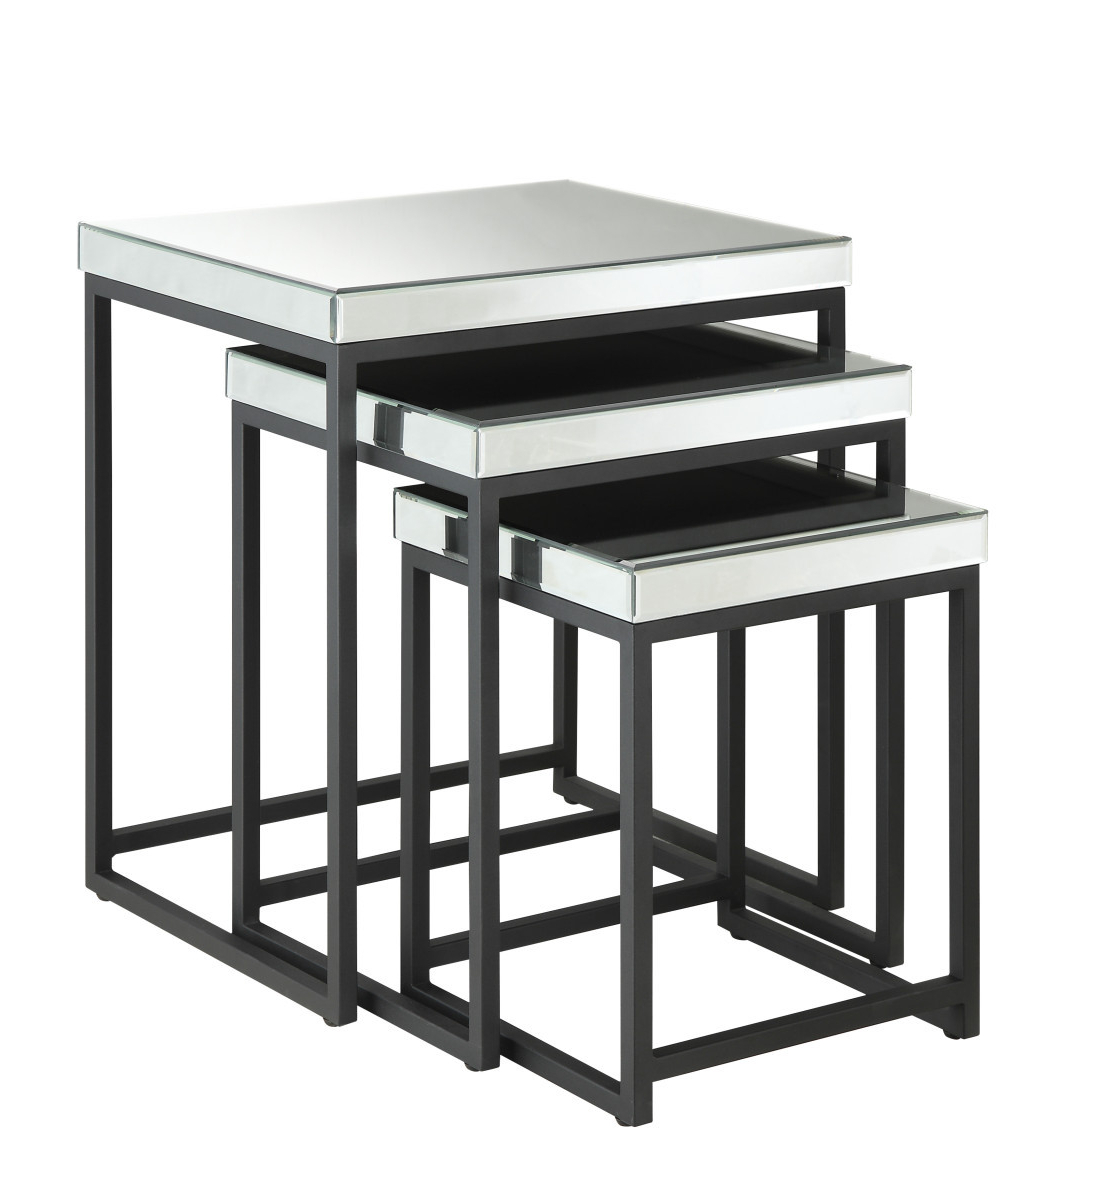 Widely Used Krystal 3 Piece Square Mirror Nesting Tables With Metal Legs Fully Assembled Within Krystal Ergonomic Metal Garden Benches (View 13 of 30)